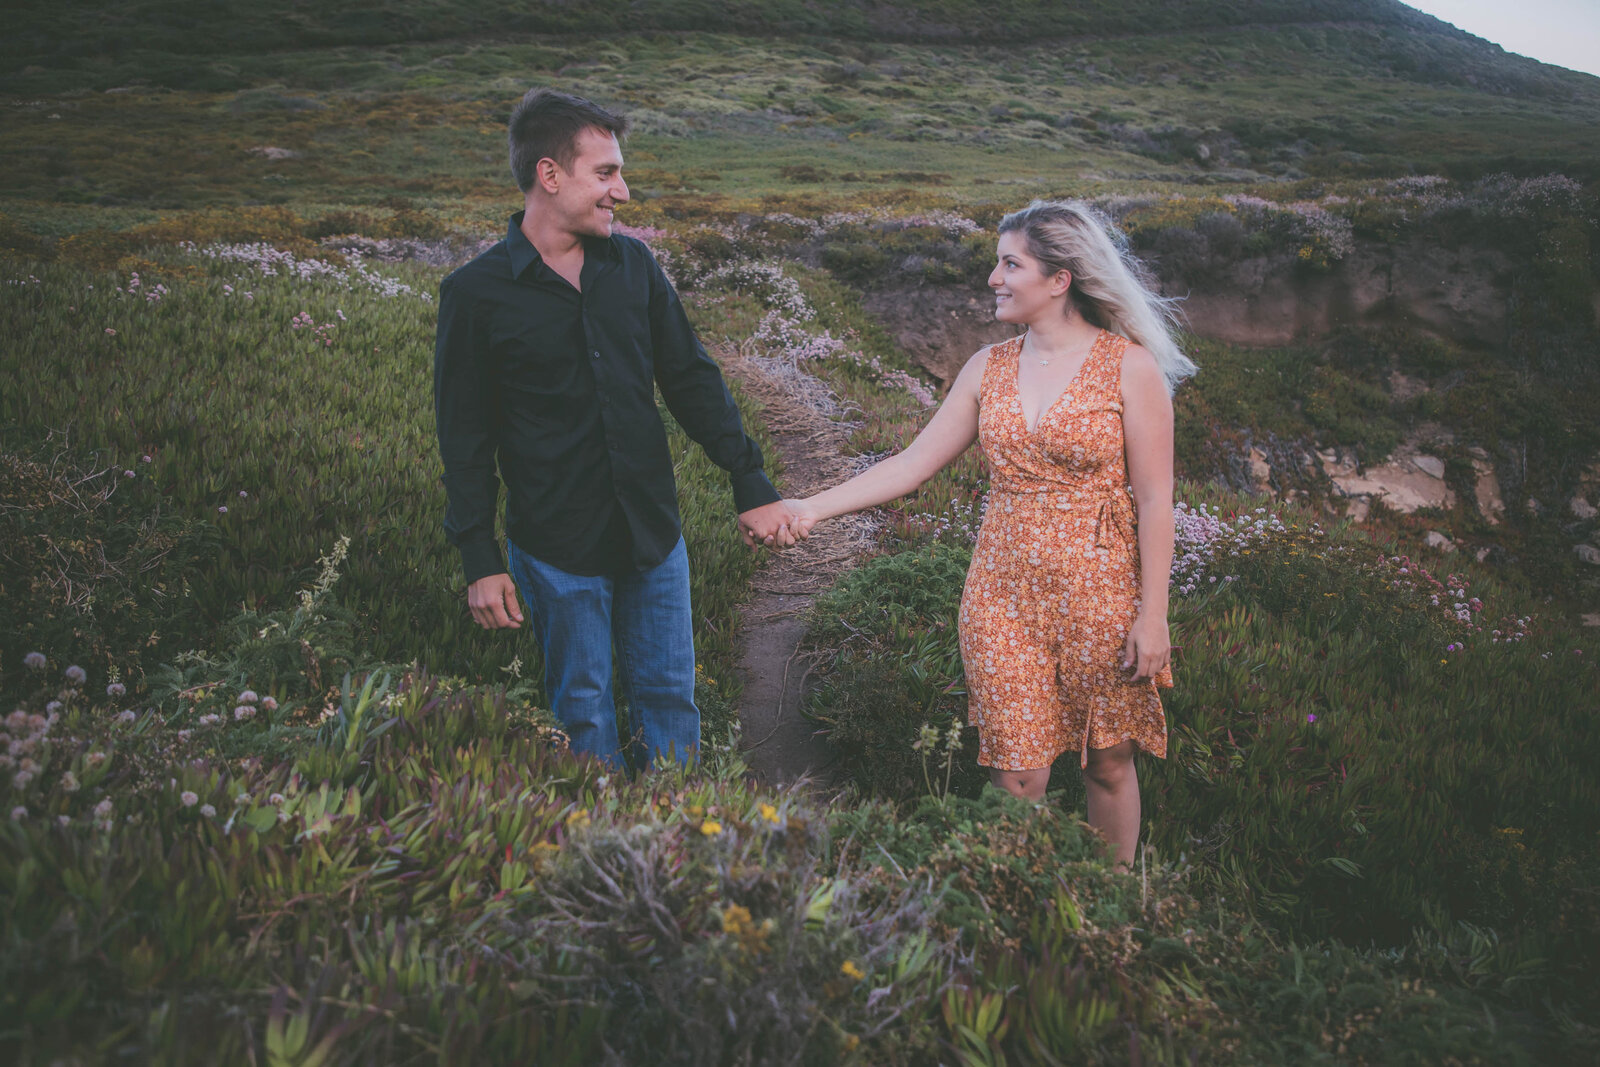 Couple hold hands and look at each other during sunset in Big Sur.